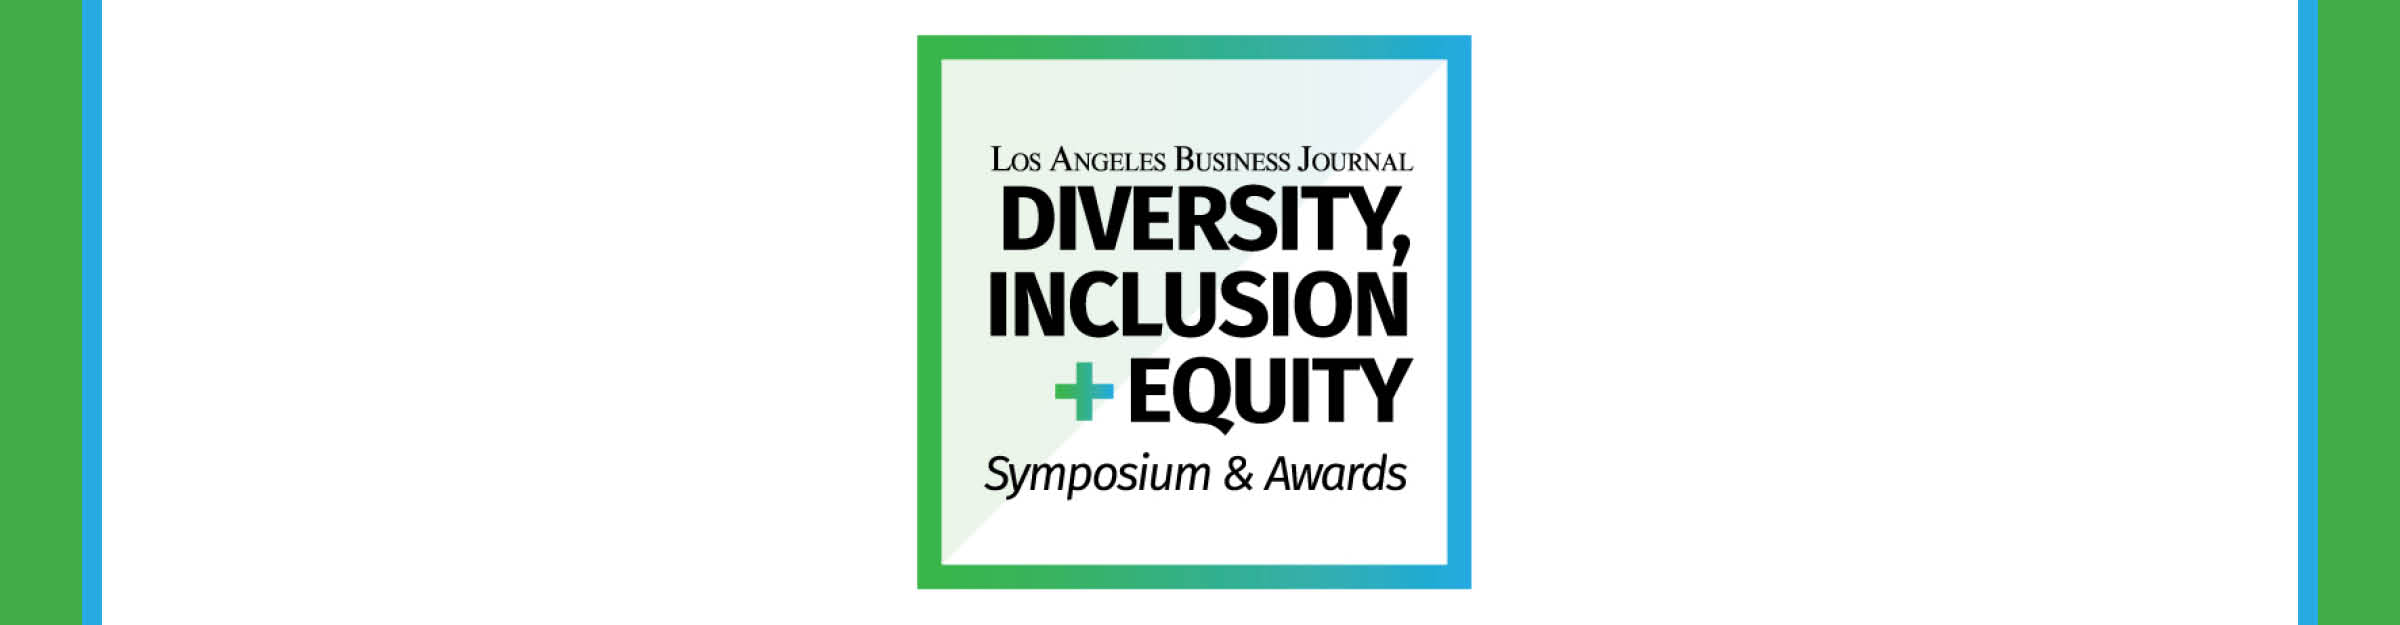 Diversity, Inclusion + Equity Awards Event Banner